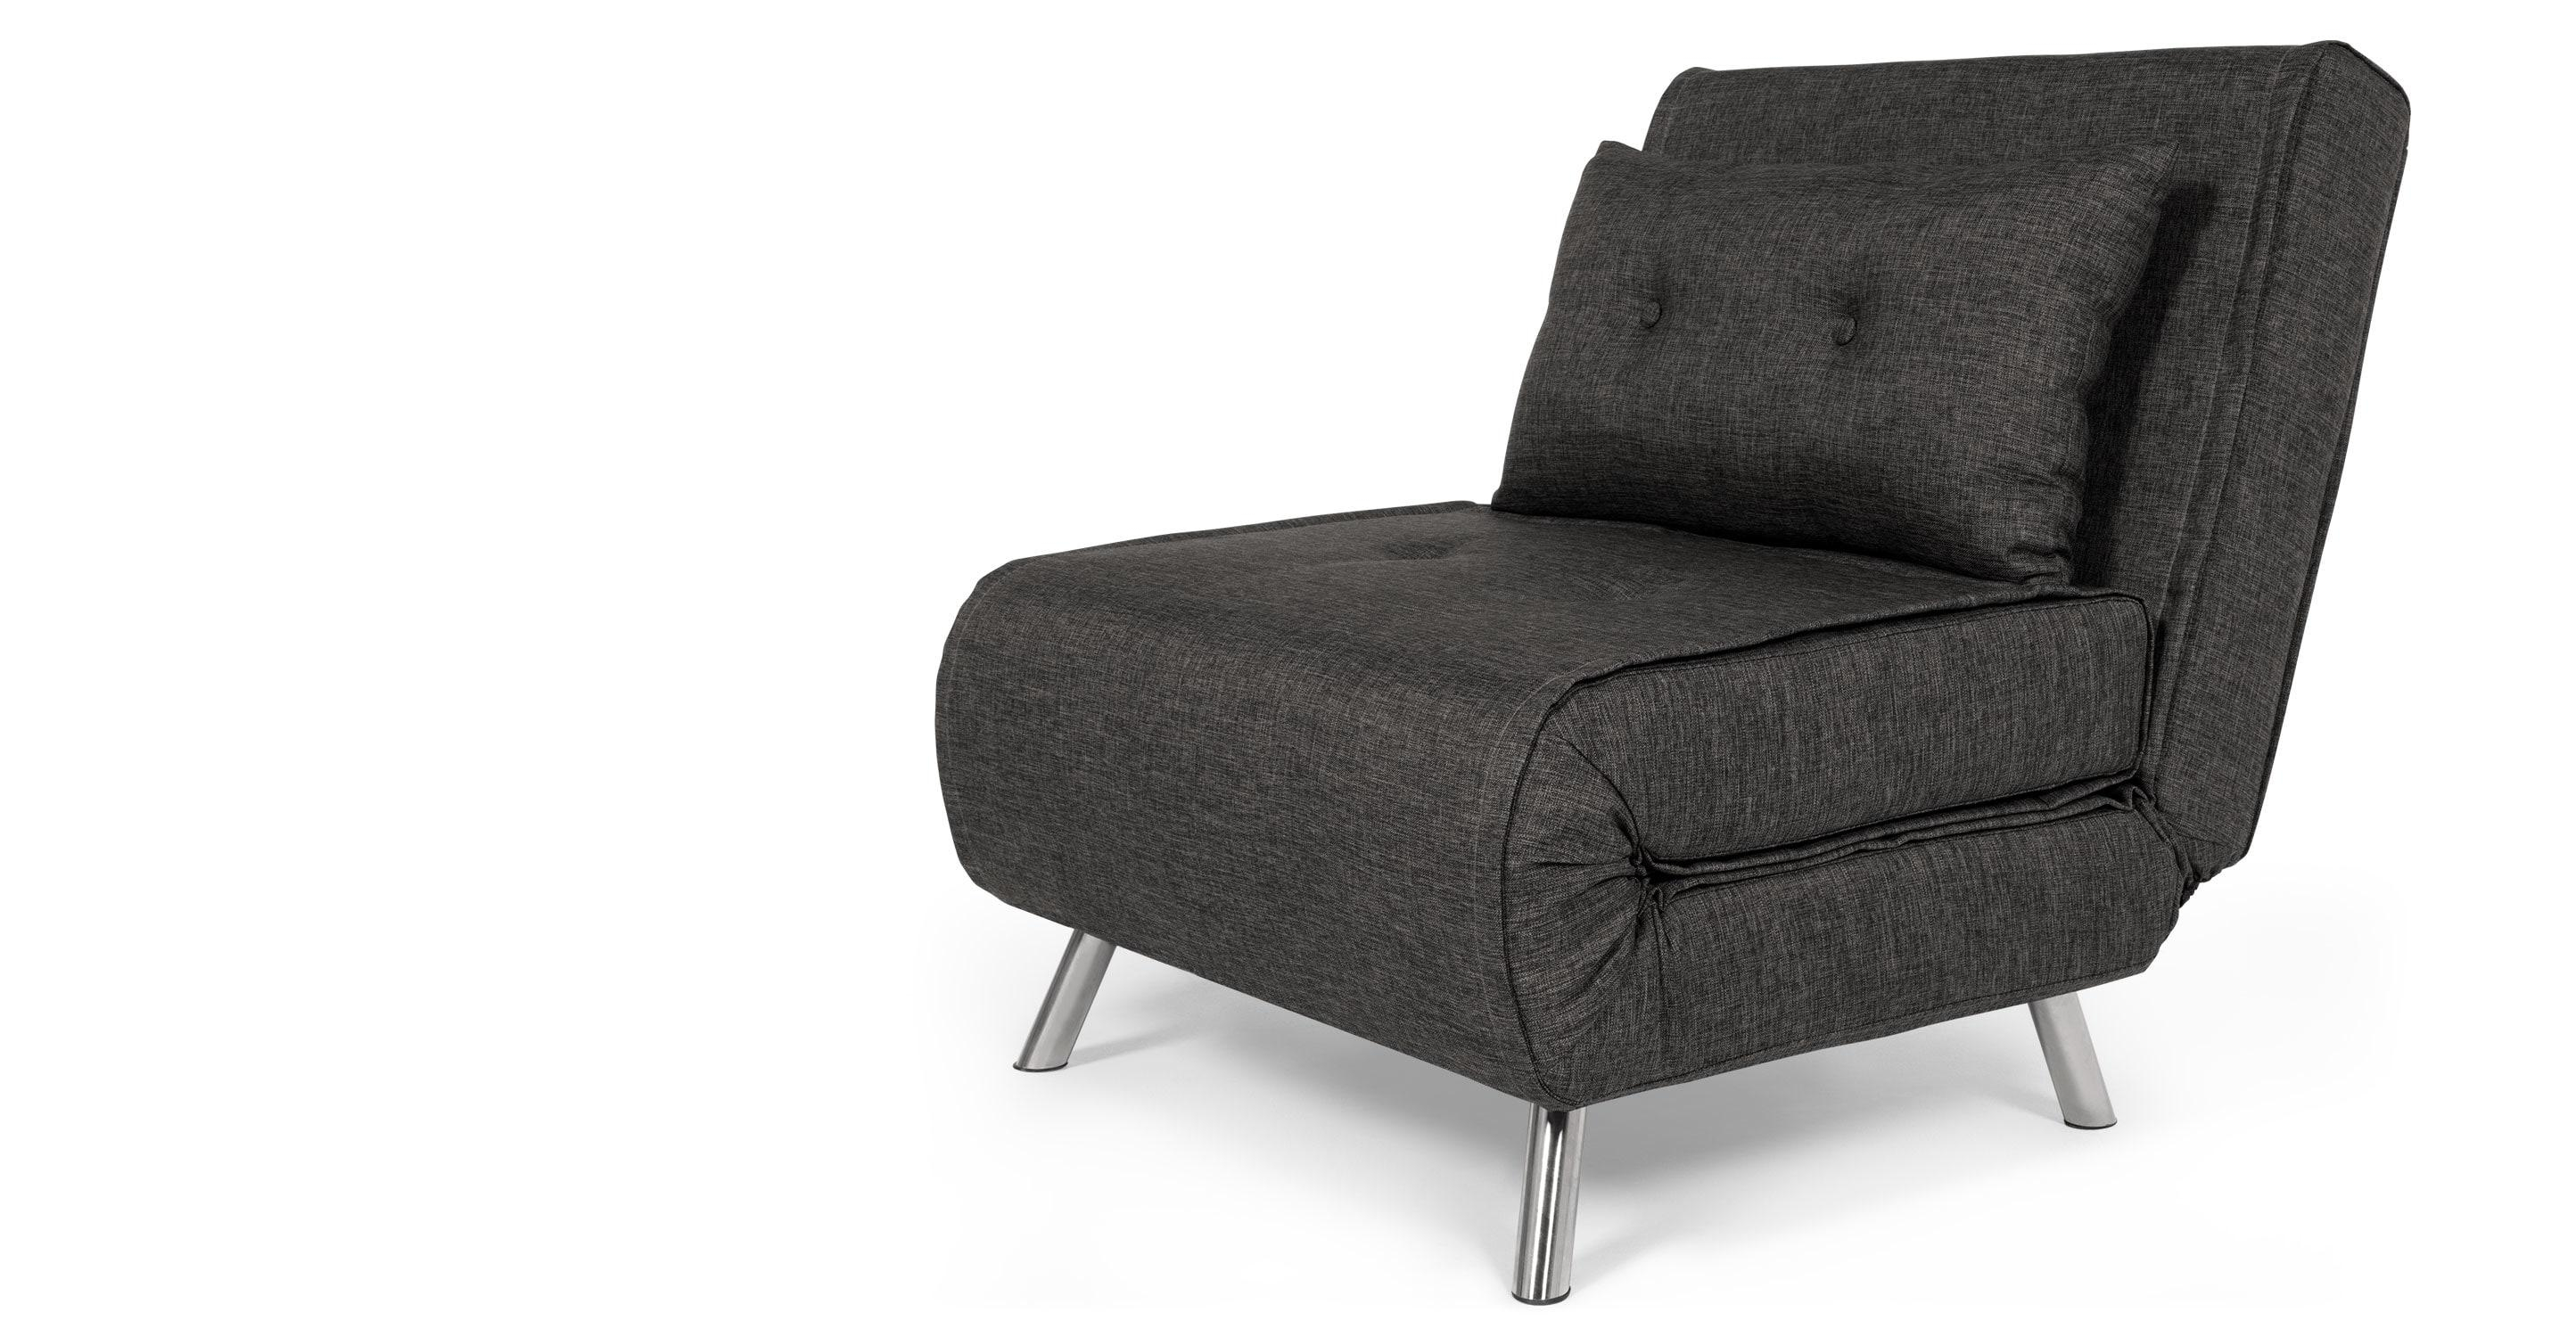 Haru Single Sofa Bed, Cygnet Grey | Made In Single Seat Sofa Chairs (Image 8 of 20)